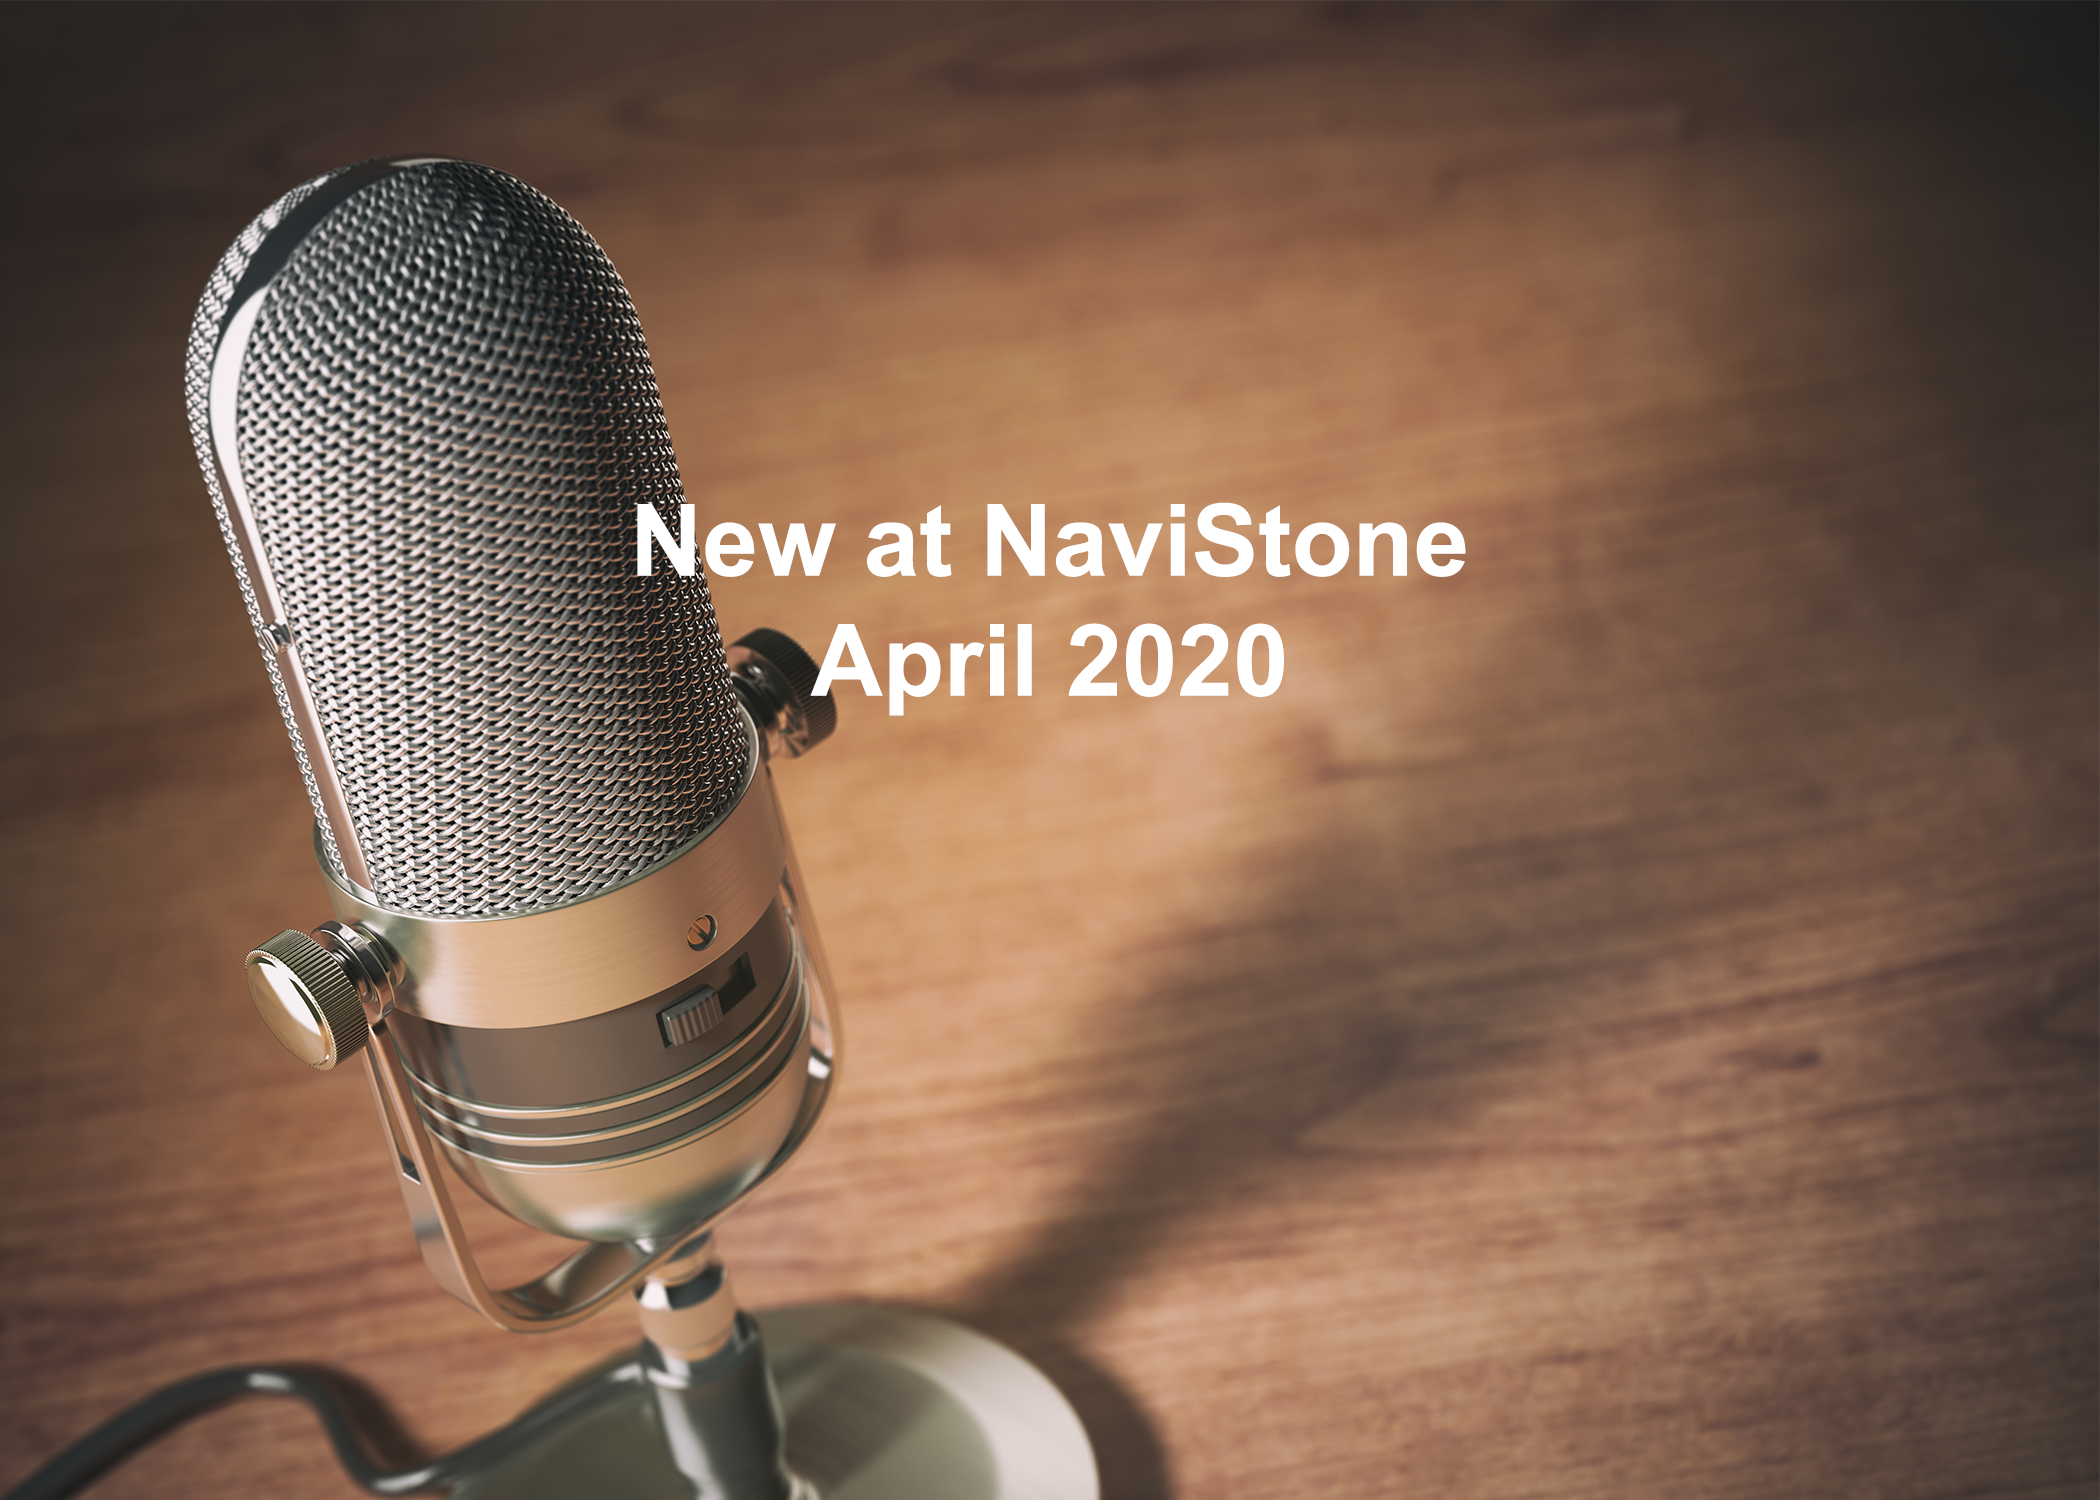 New at NaviStone April 2020